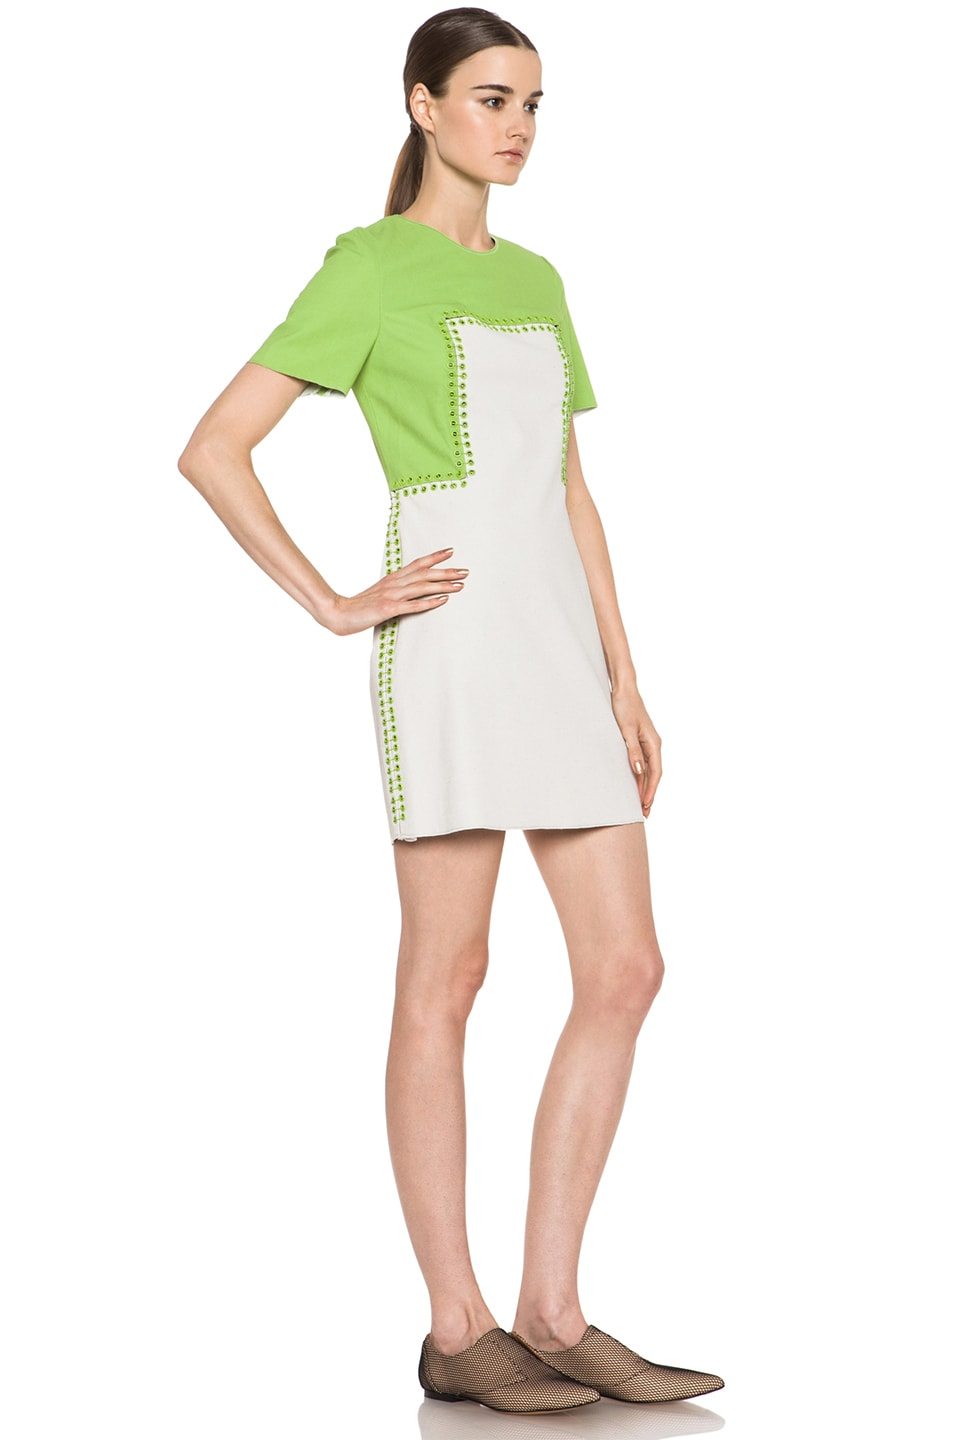 Image 3 of 3.1 phillip lim Shift Dress with Pin and Eyelet Embellishment in Avocado & Canvas